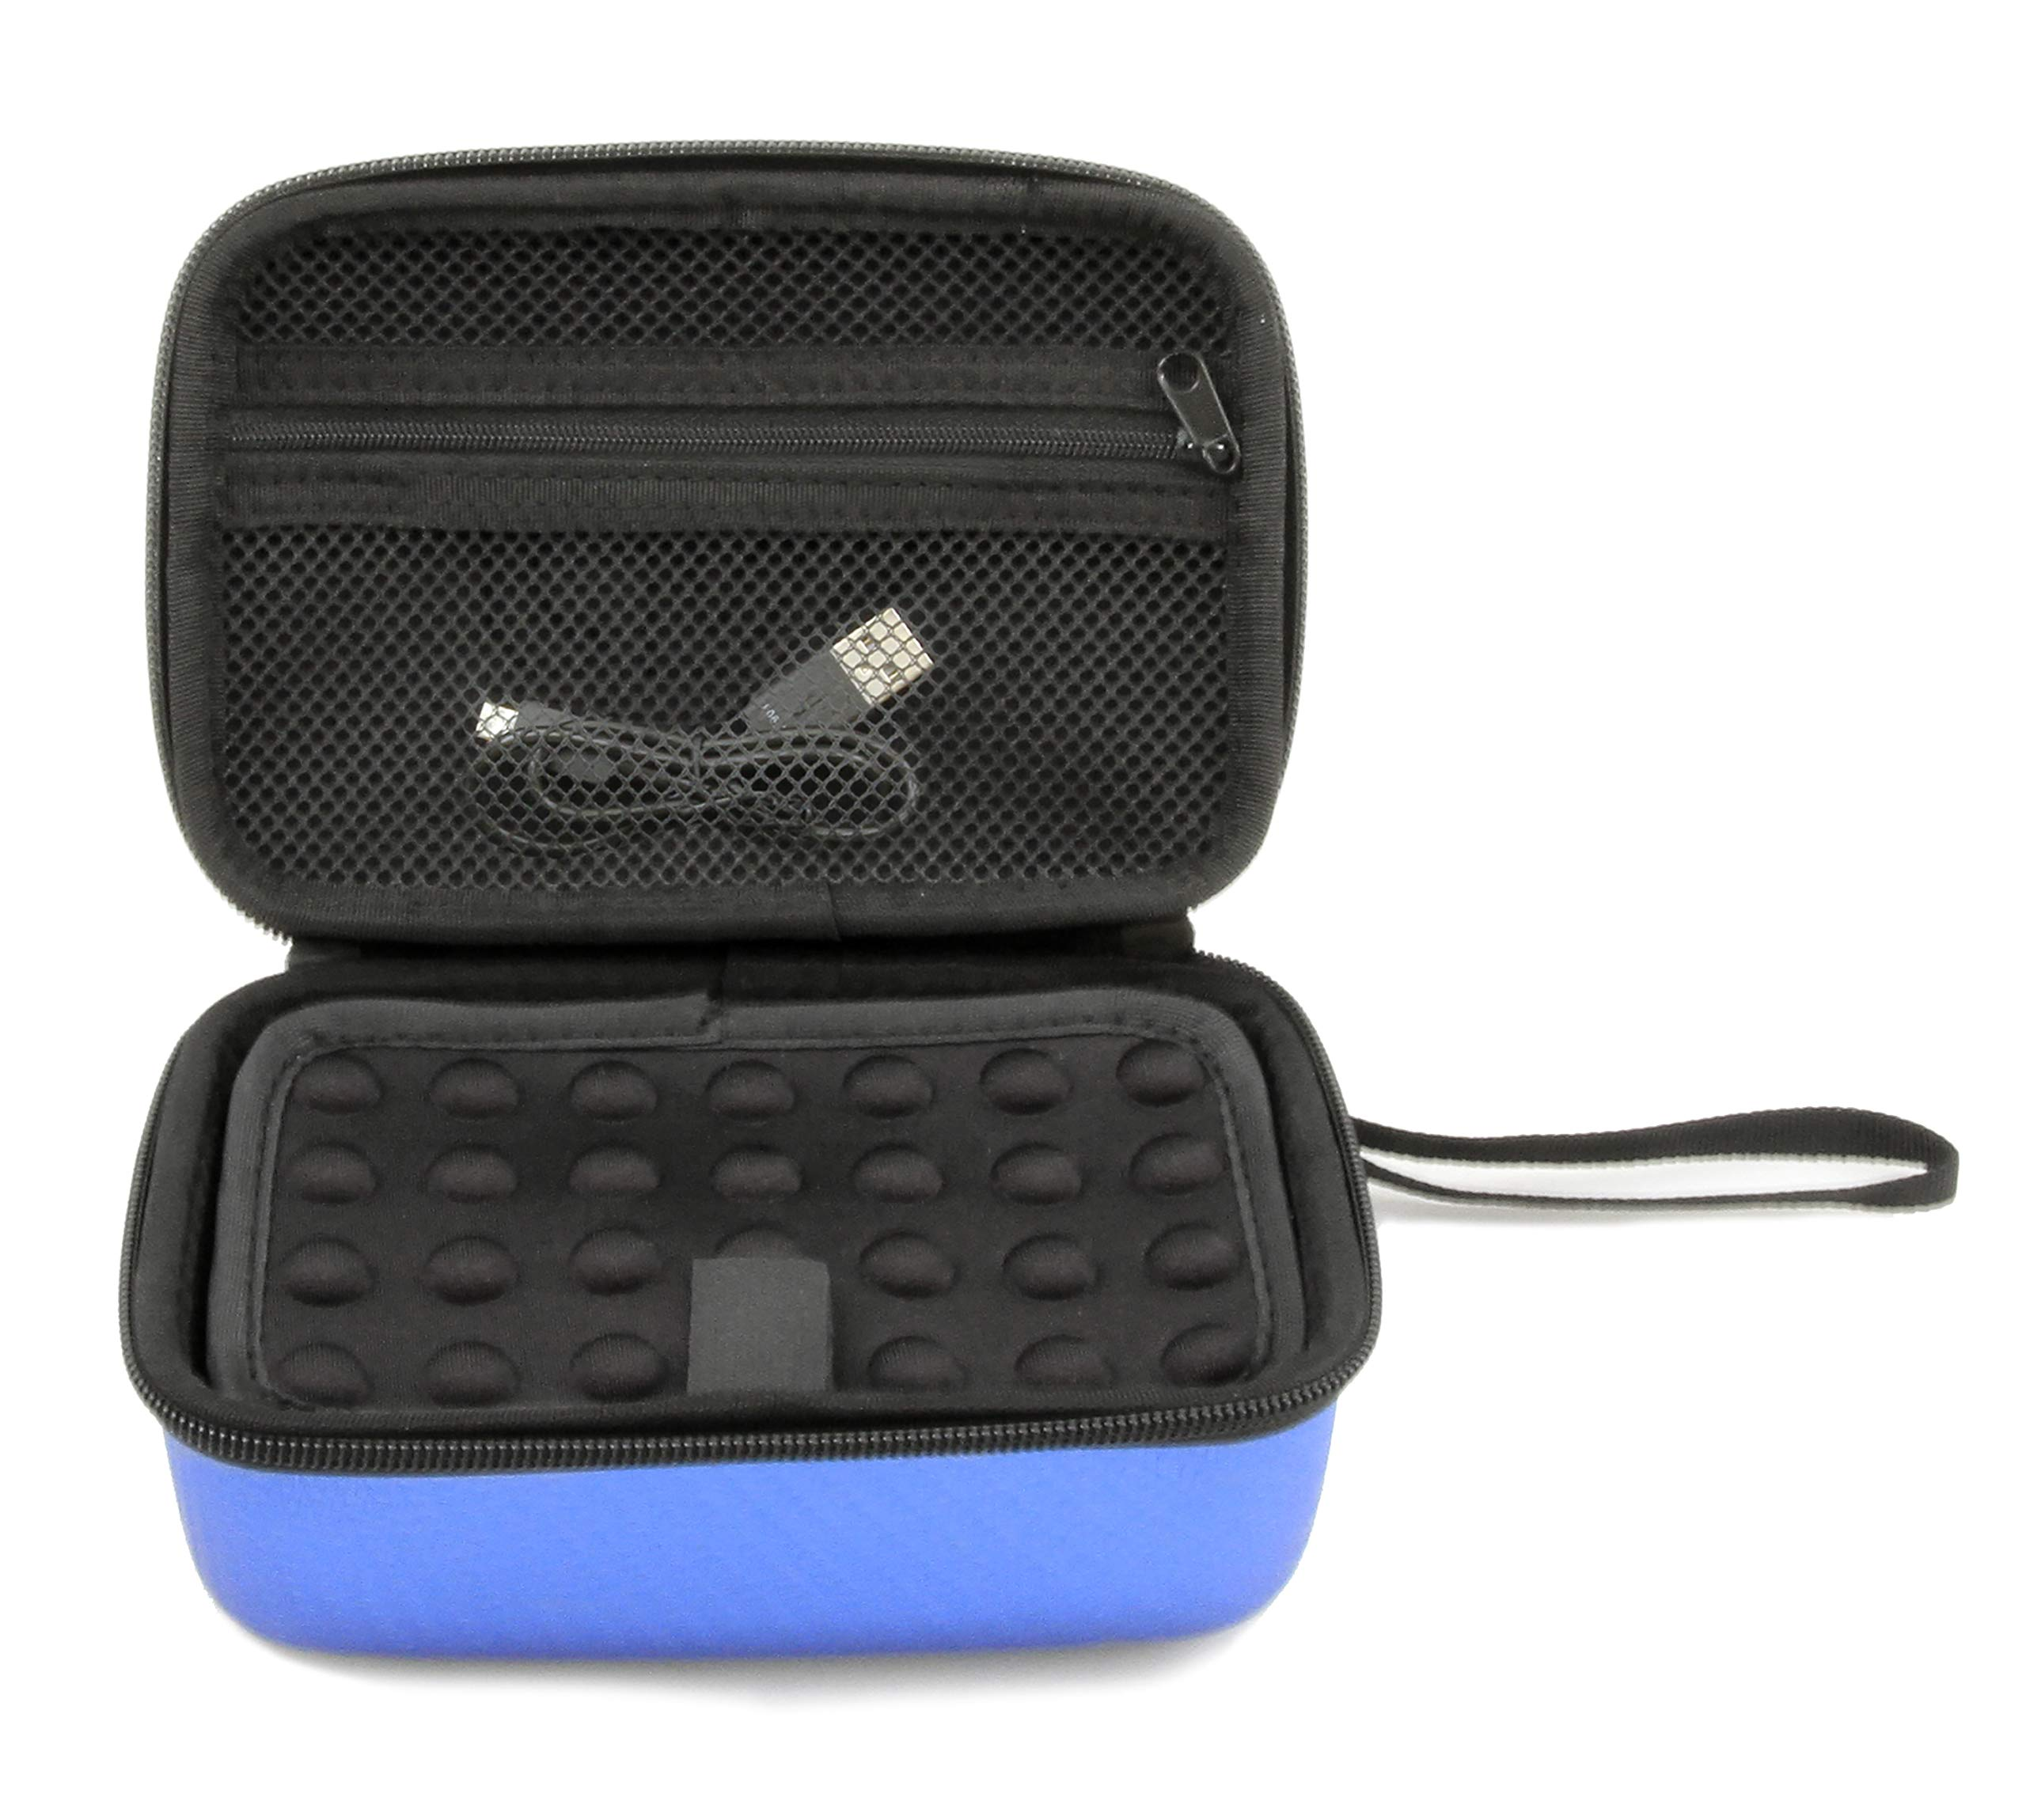 CASEMATIX Blue Toy Case Compatible with Boxer Interactive A.I. Robot - Includes Toy Box and Felt Bag to Hold Game Activating Feature Cards by CASEMATIX (Image #4)